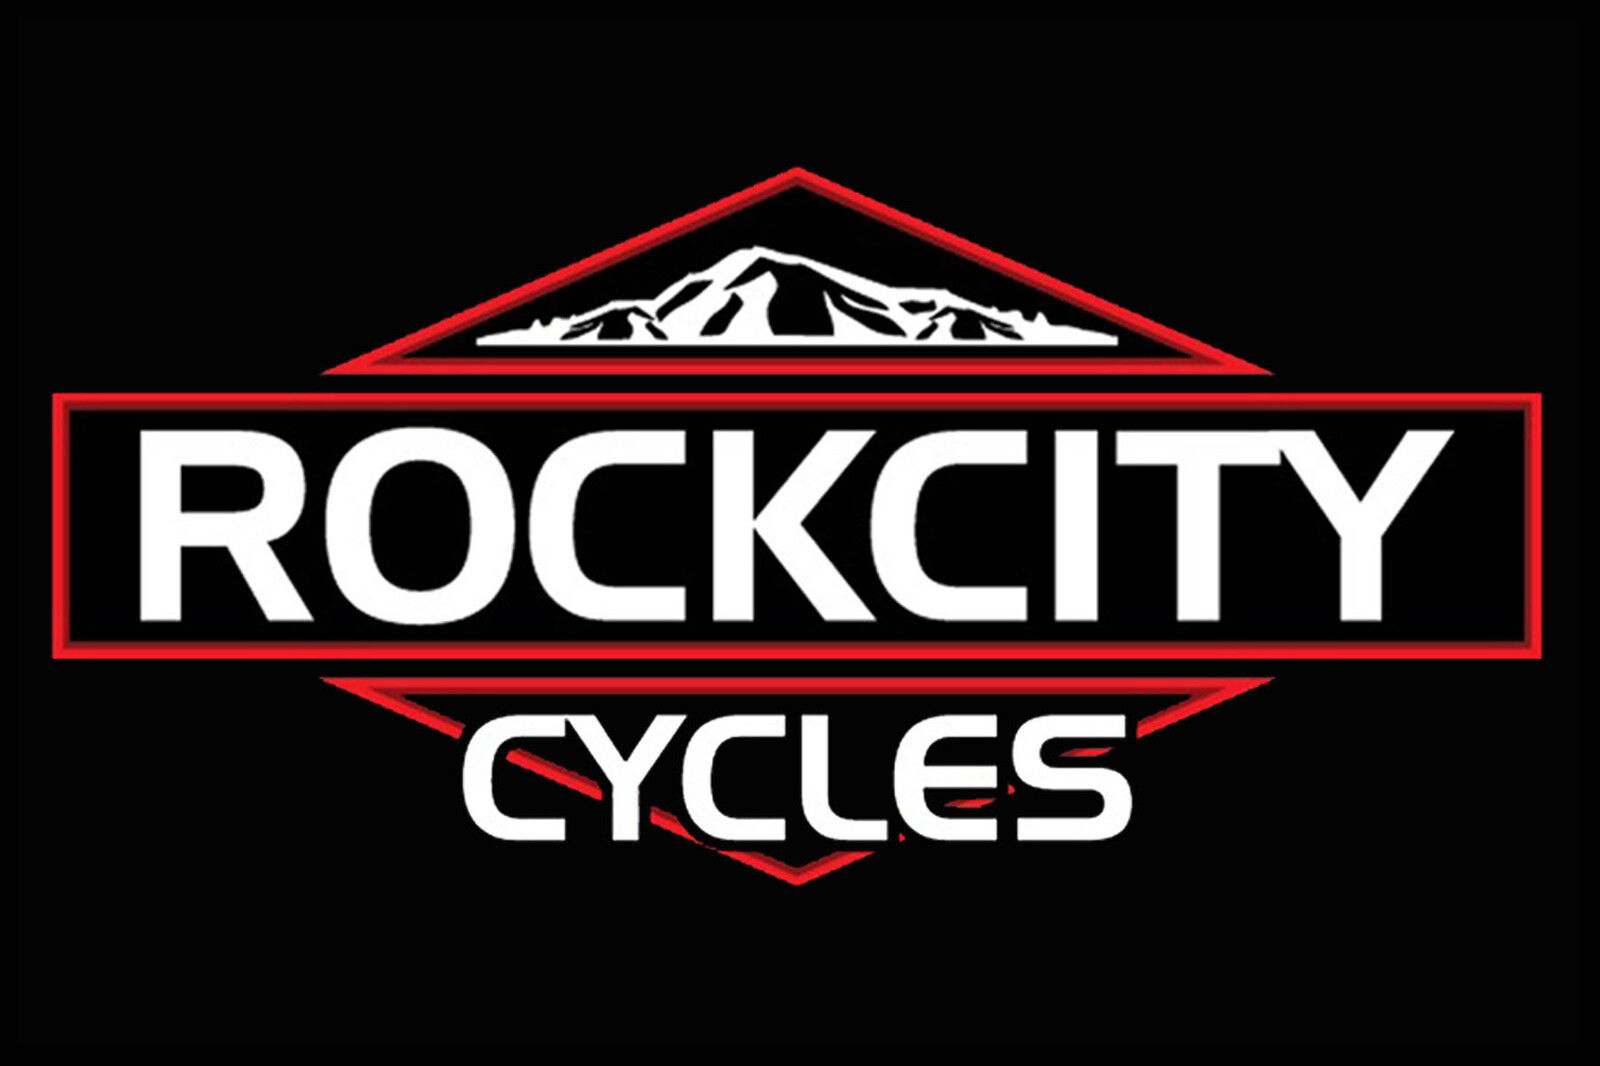 ROCKCITYCYCLES